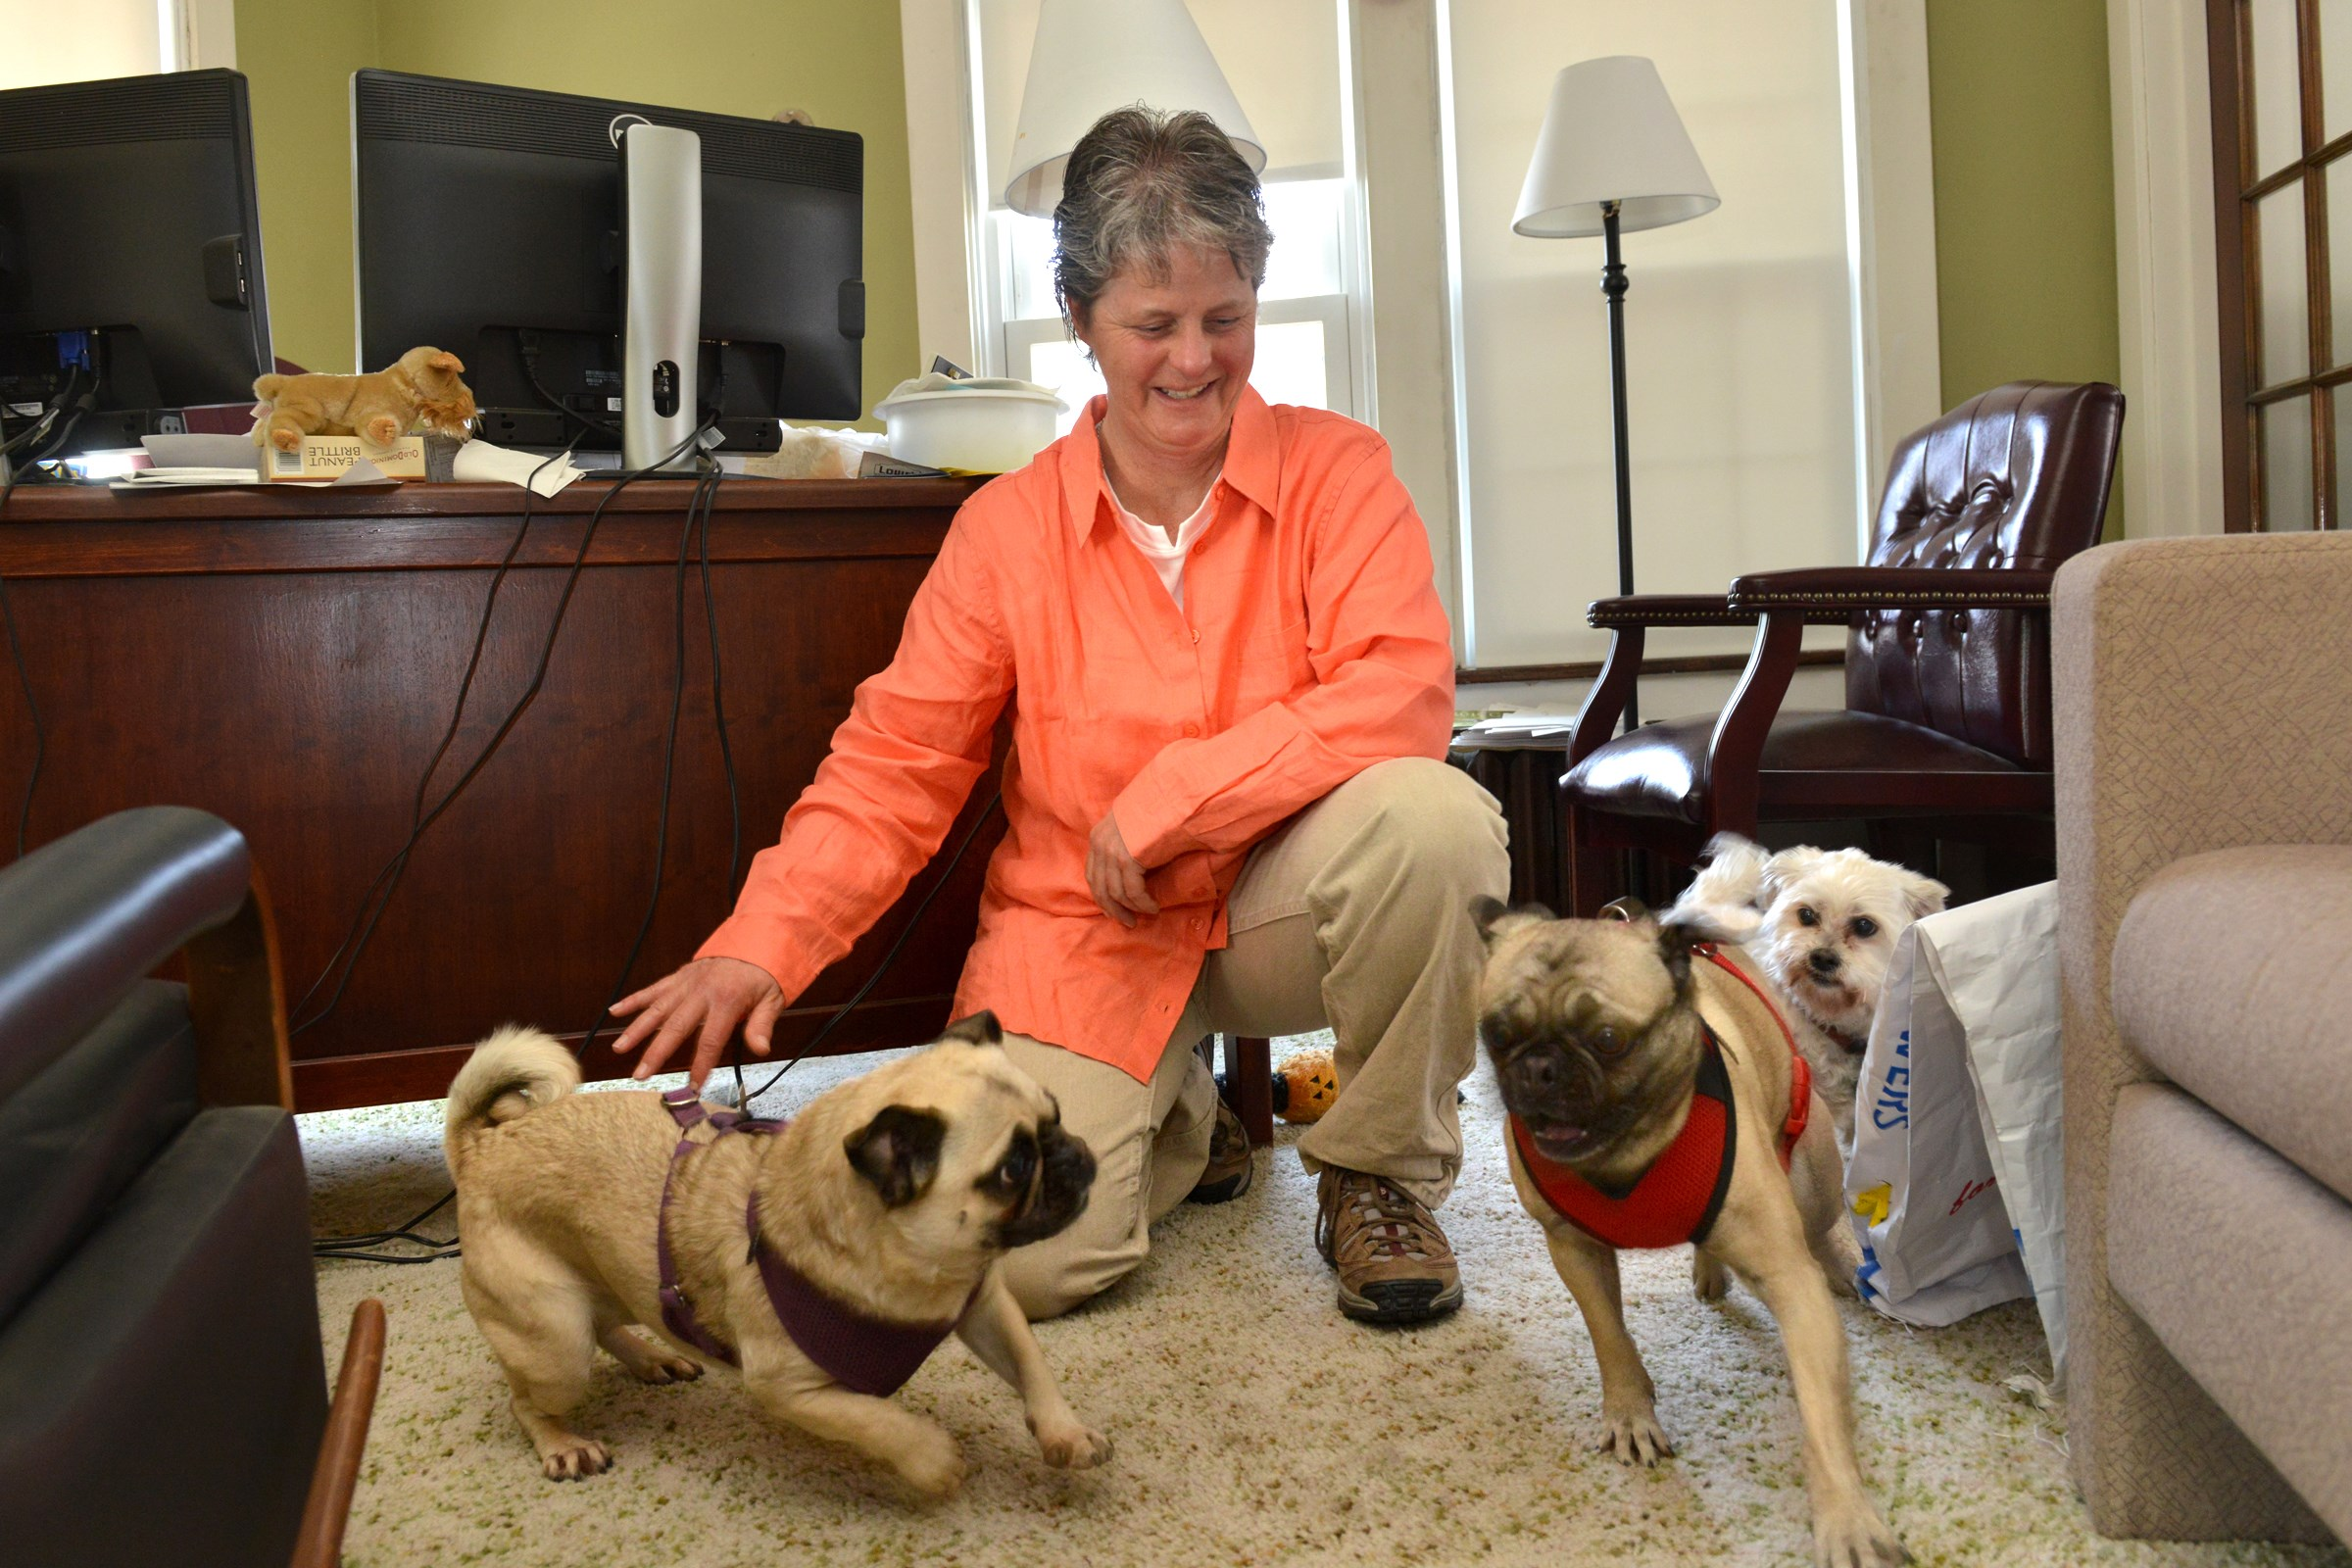 Pat McKenna, fiscal director at HOPE Center, brings her three rescue dogs to work. Pugs Pani, left, and Annabelle race around her office as Bridget, a maltese mix watches.